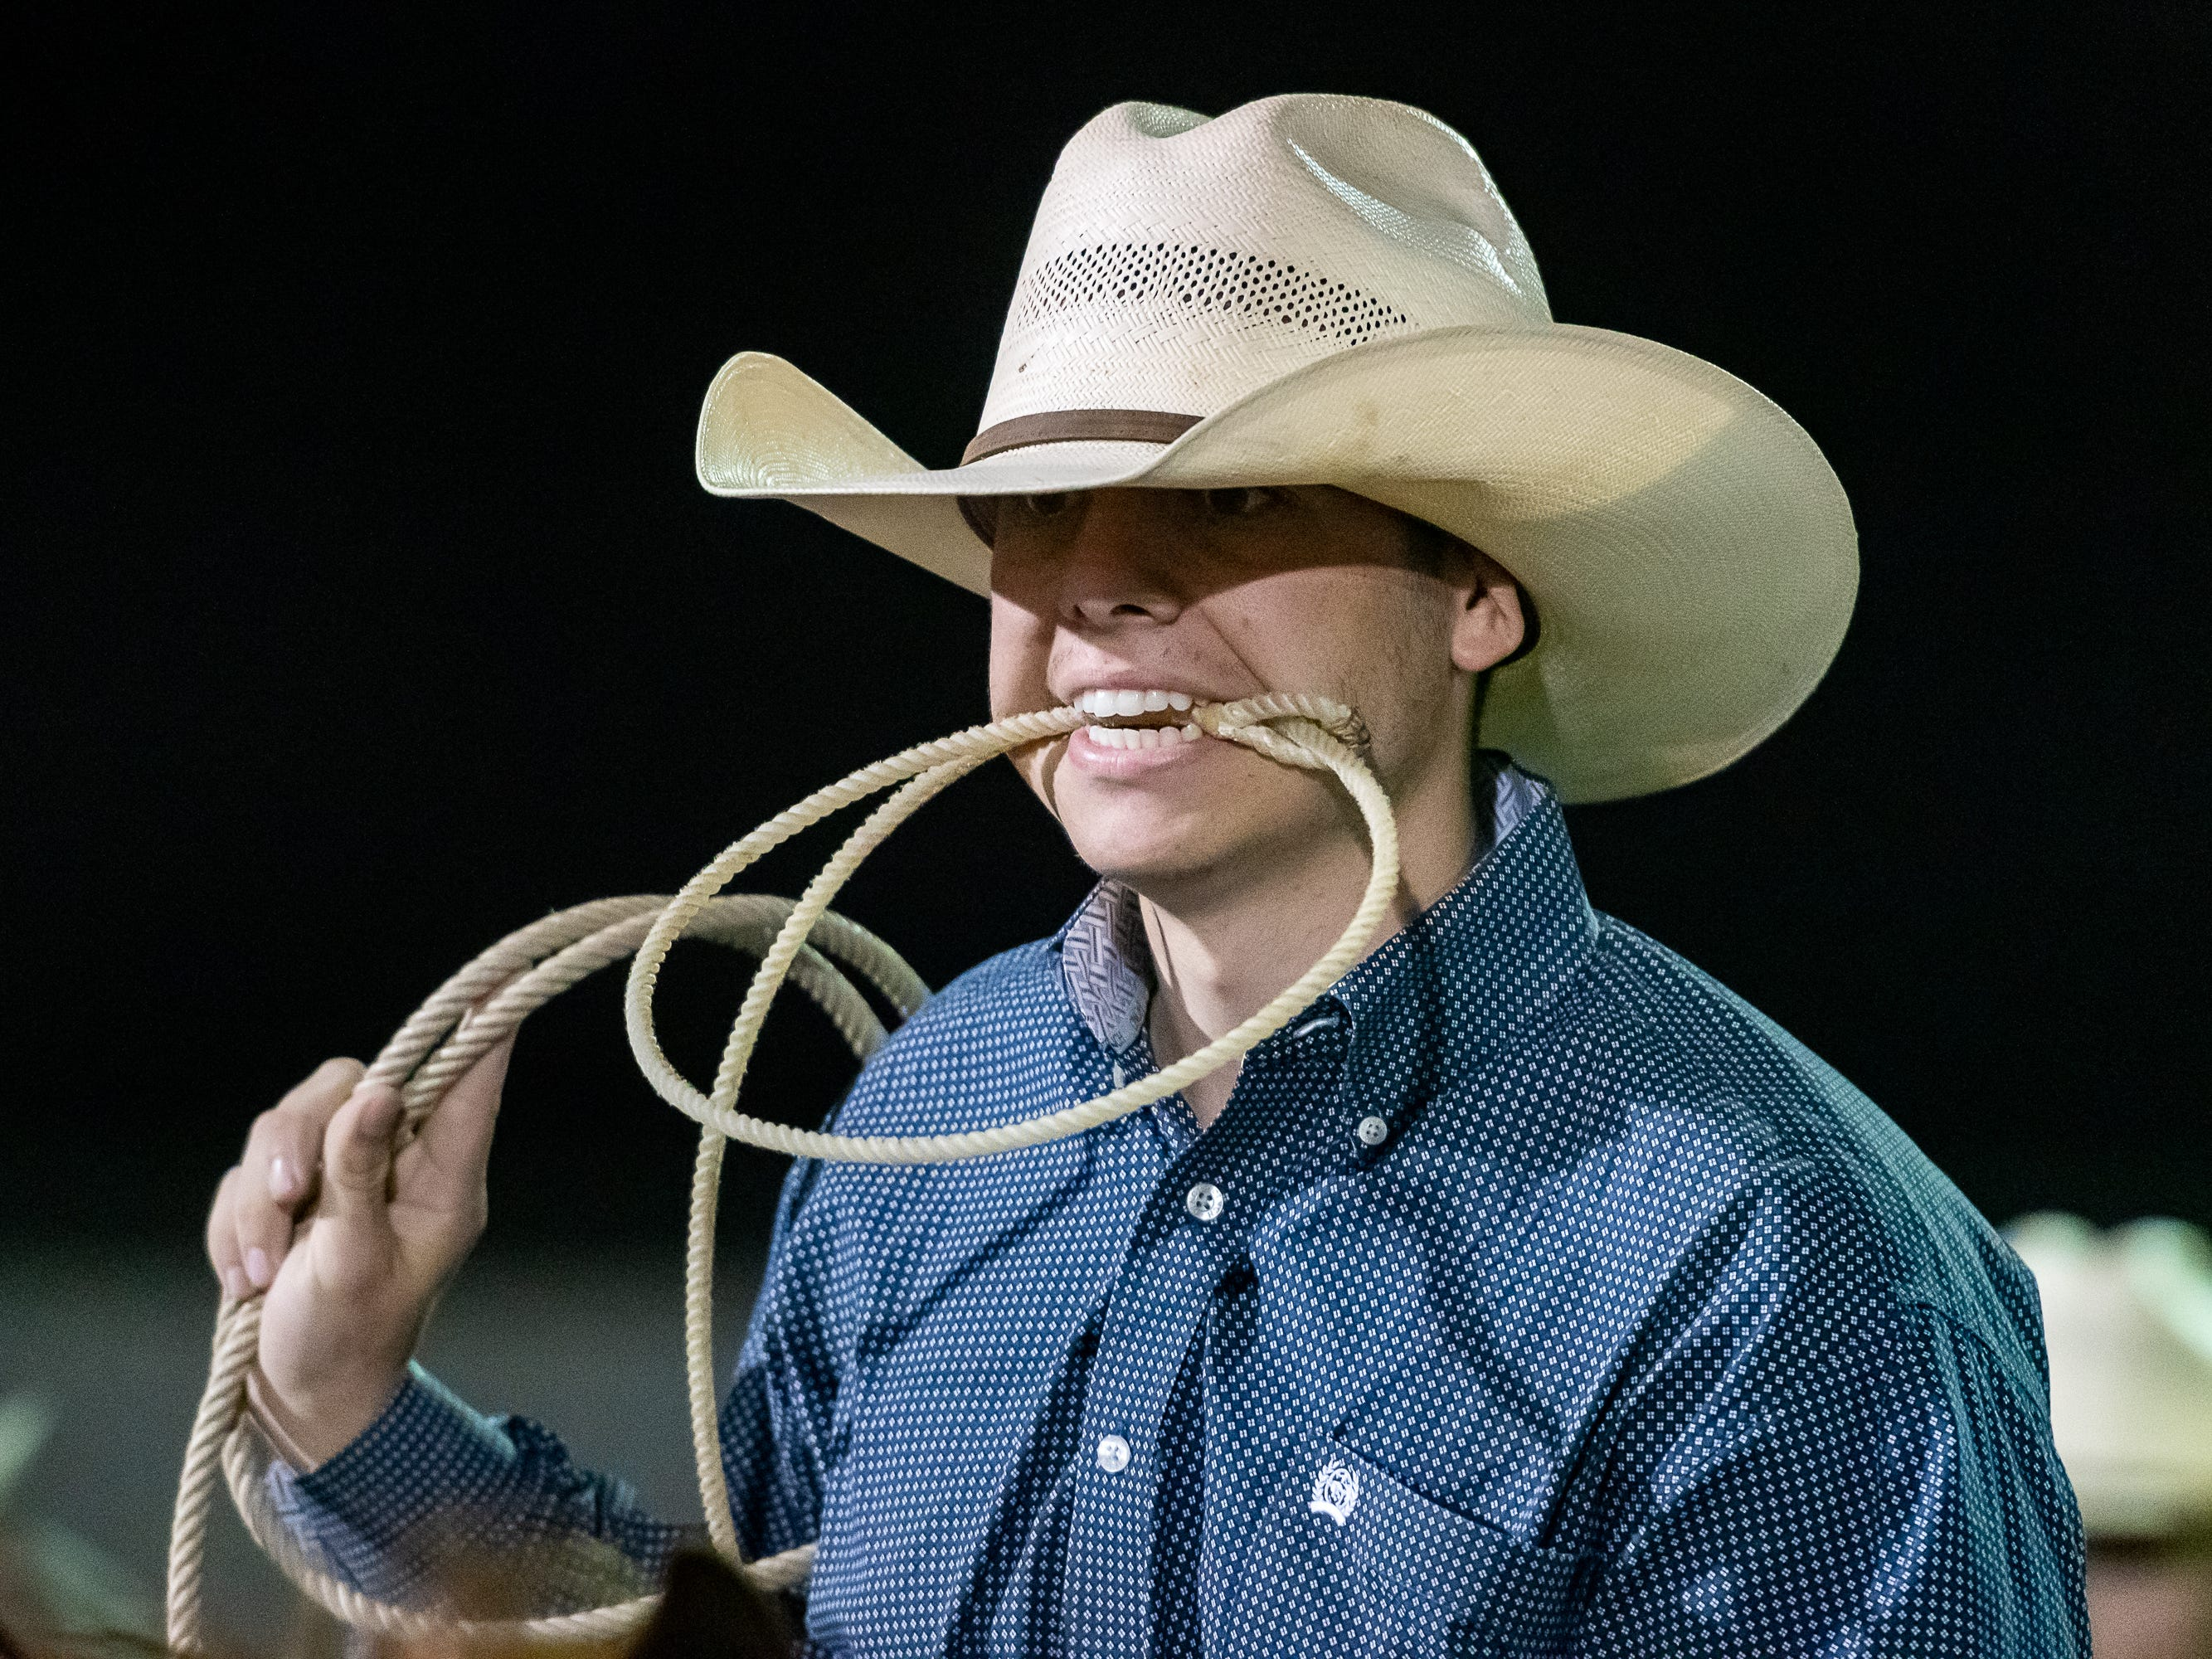 Calf Roper Tyler Frederick gets ready to nod for the chute as the Cajun Rodeo Association host the Cowboys Spring Stampede 19 Rodeo at Cowboys Arena in Scott, LA. Saturday, April 13, 2019.